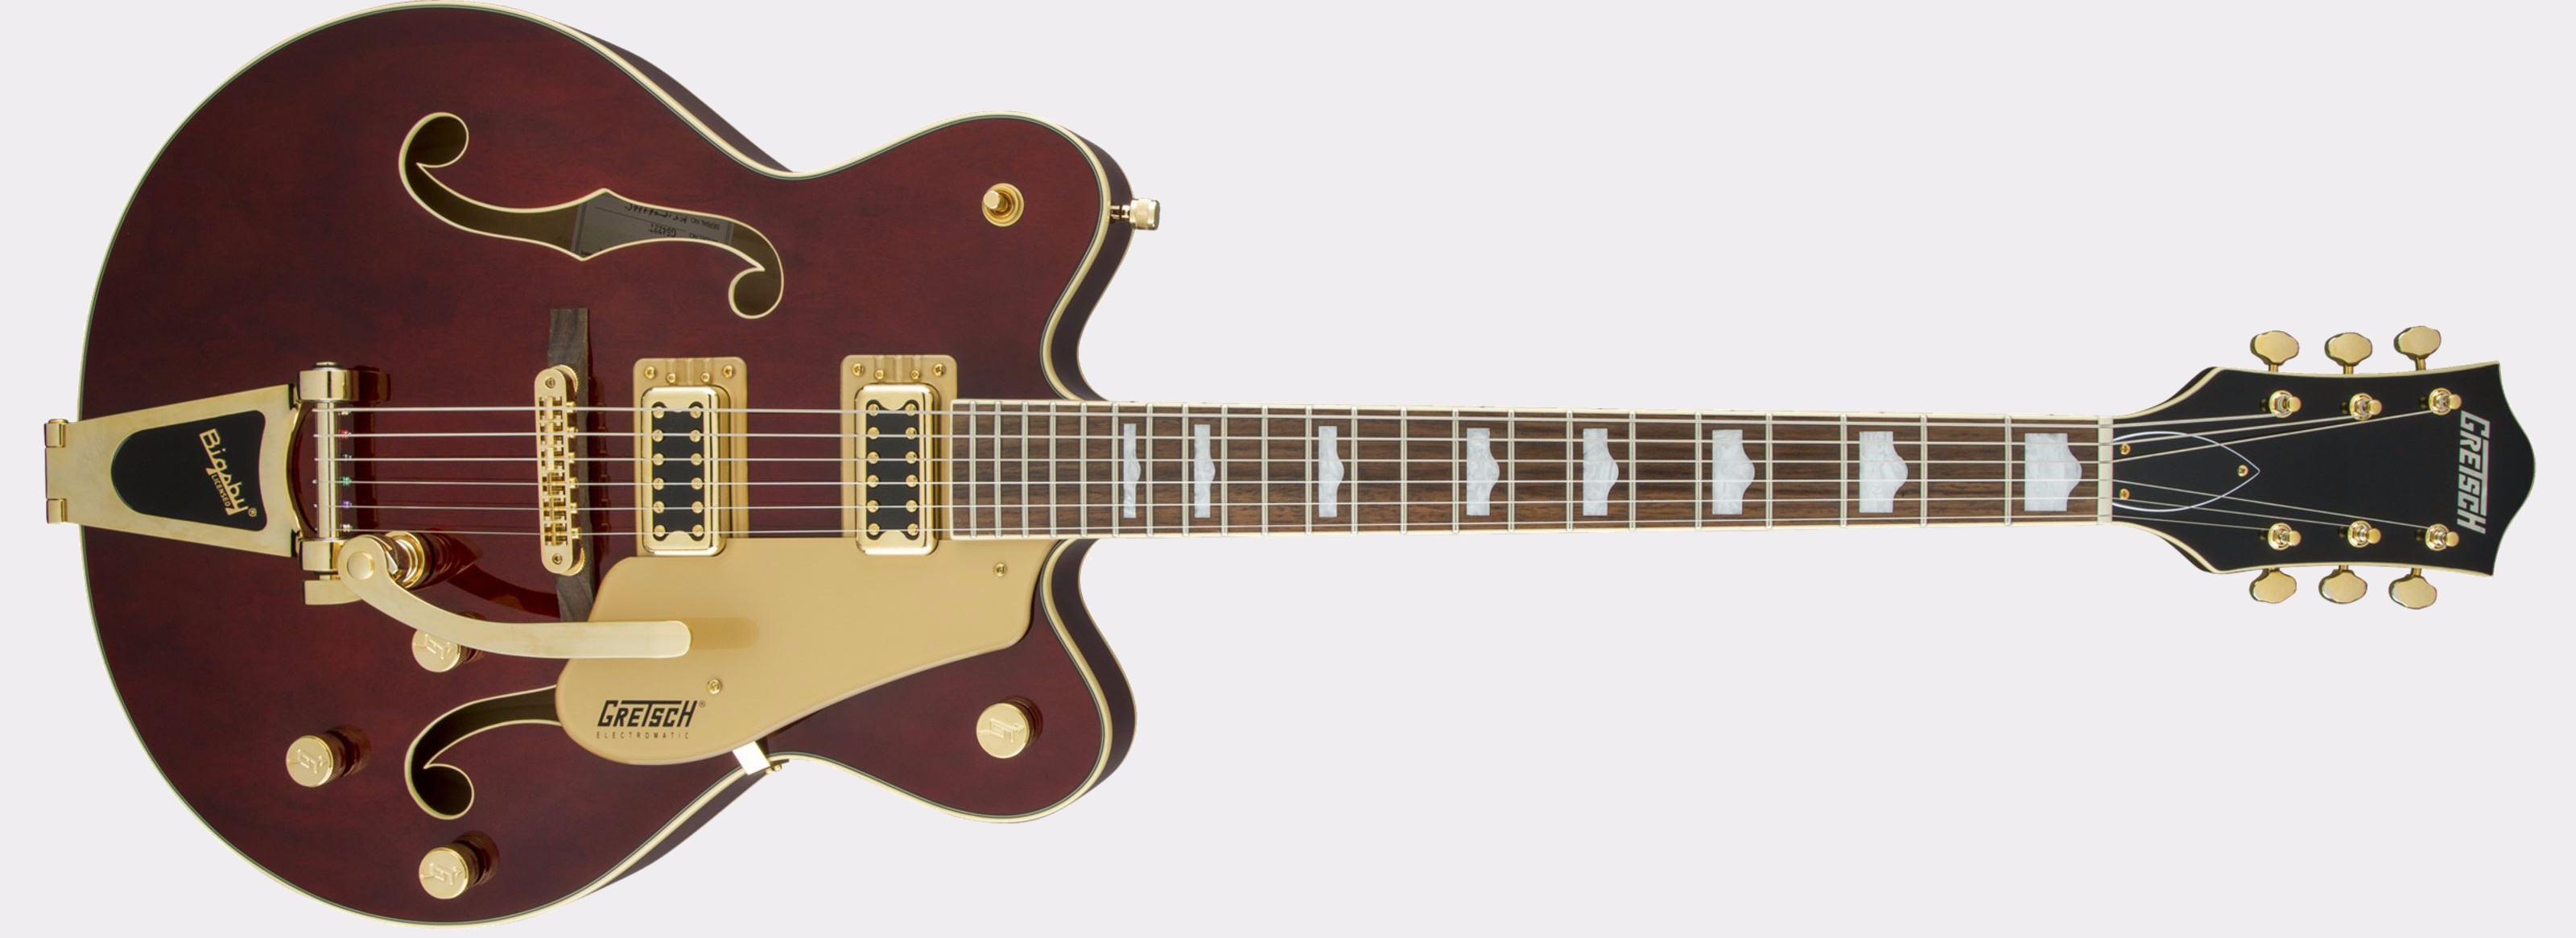 Gretsch G5422T Electromatic Walnut Stain Front